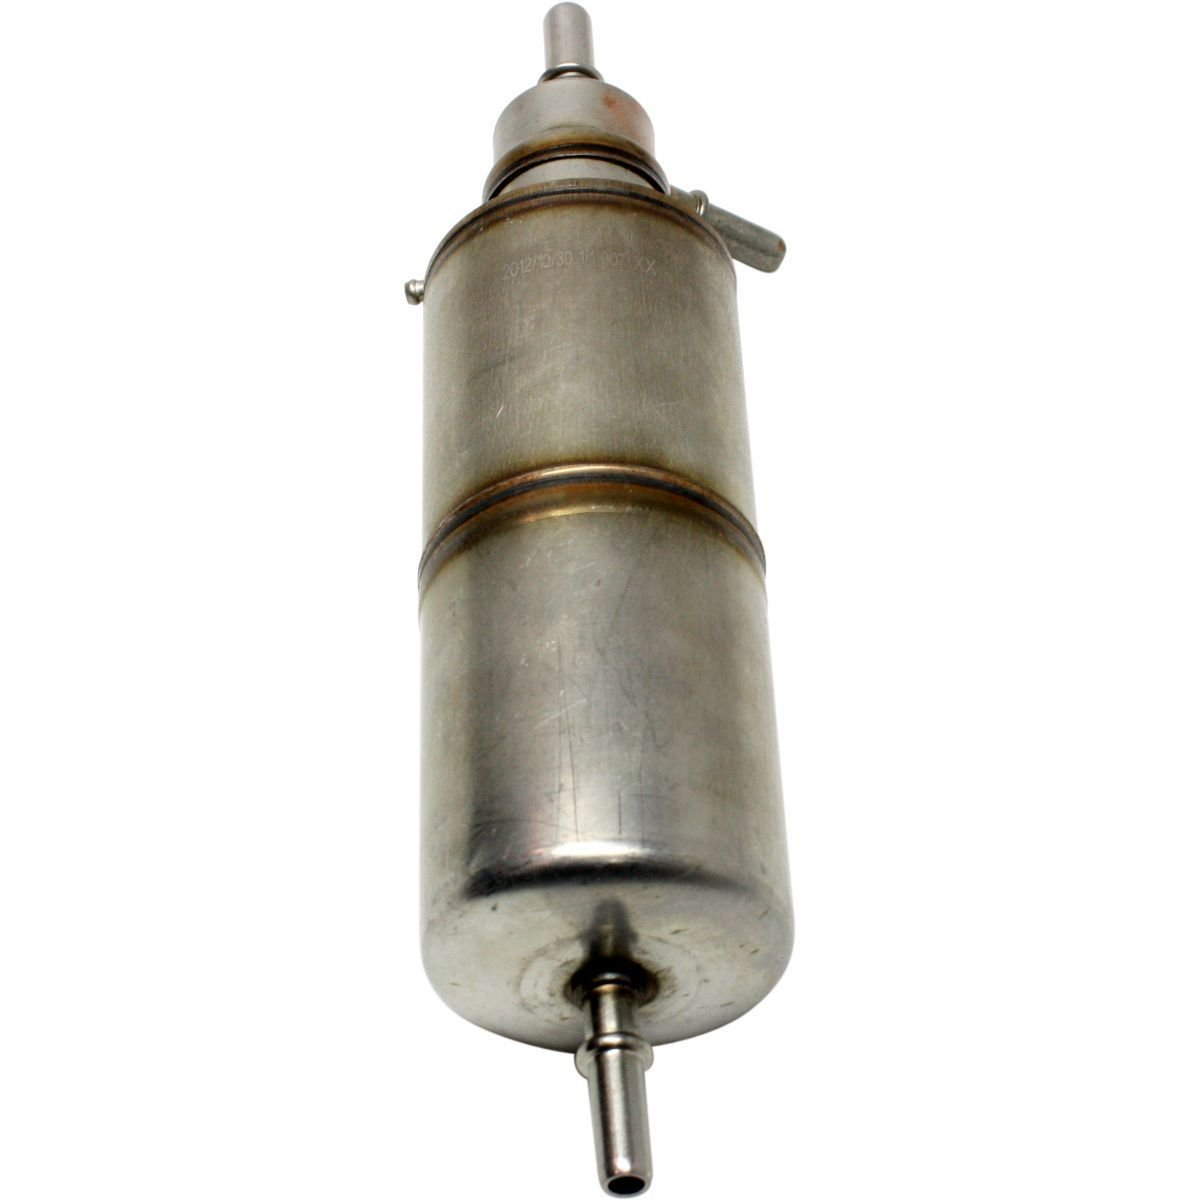 Diften 345 A0105 X01 New Fuel Filter Ml Class Mb 1999 Mercedes Ml320 Location Benz 164 Chassis Ml430 163 Ml55 Amg Automotive